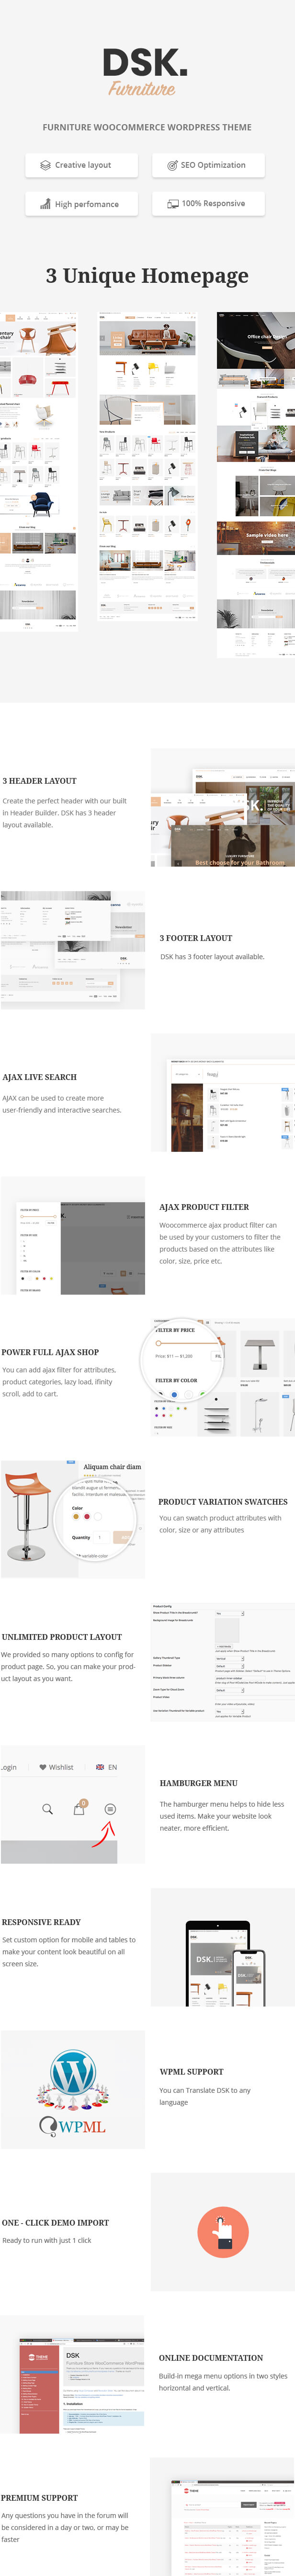 DSK - Furniture Store WooCommerce WordPress Theme - 1